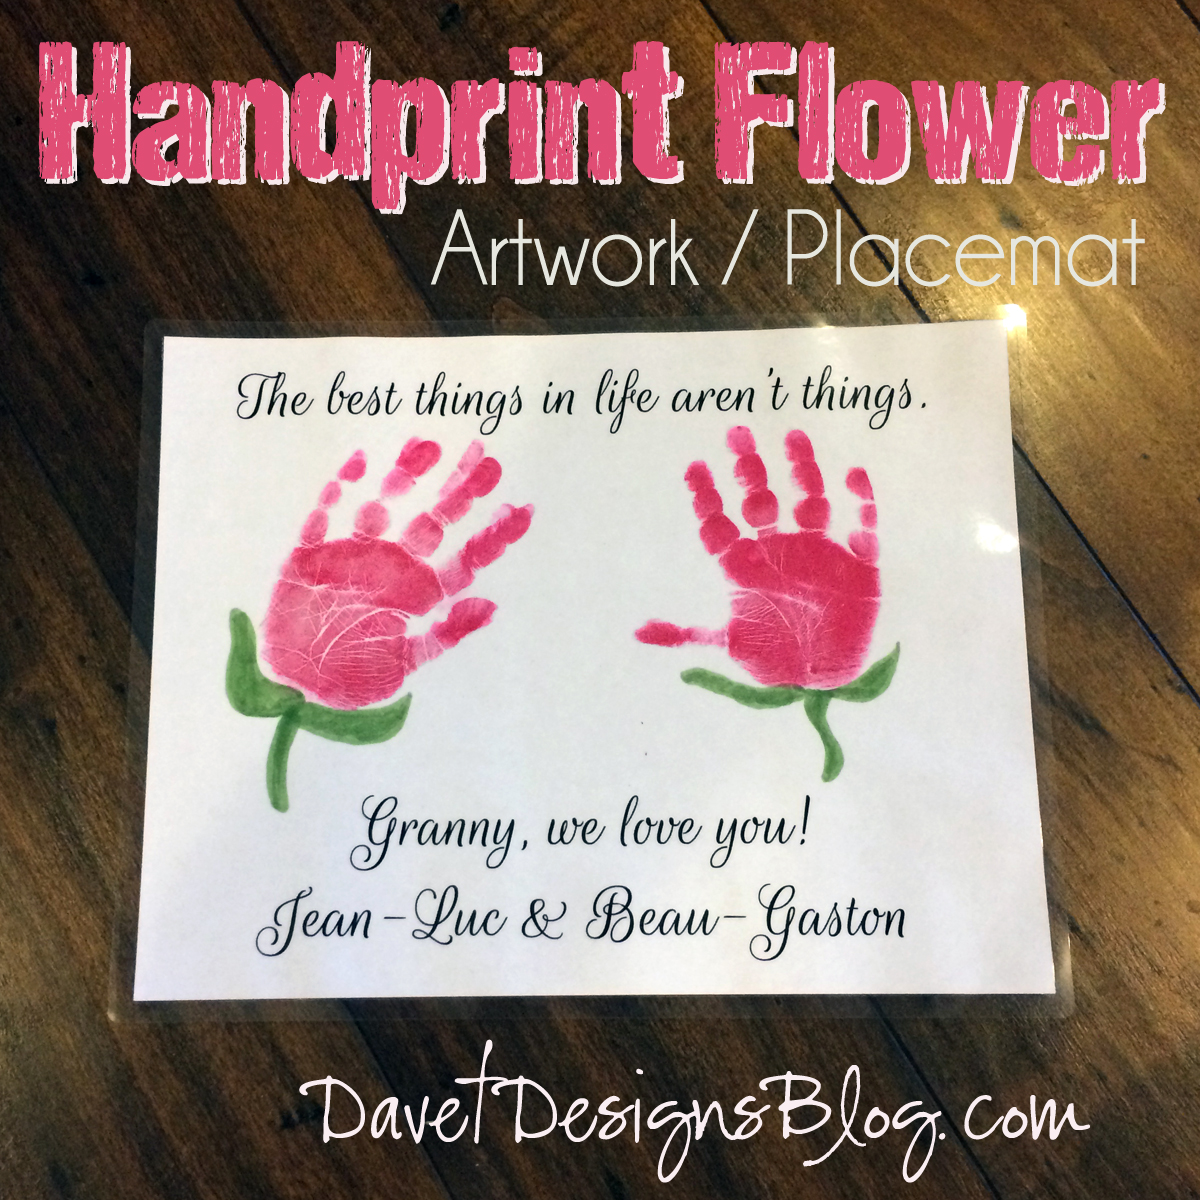 Handprint flower artwork